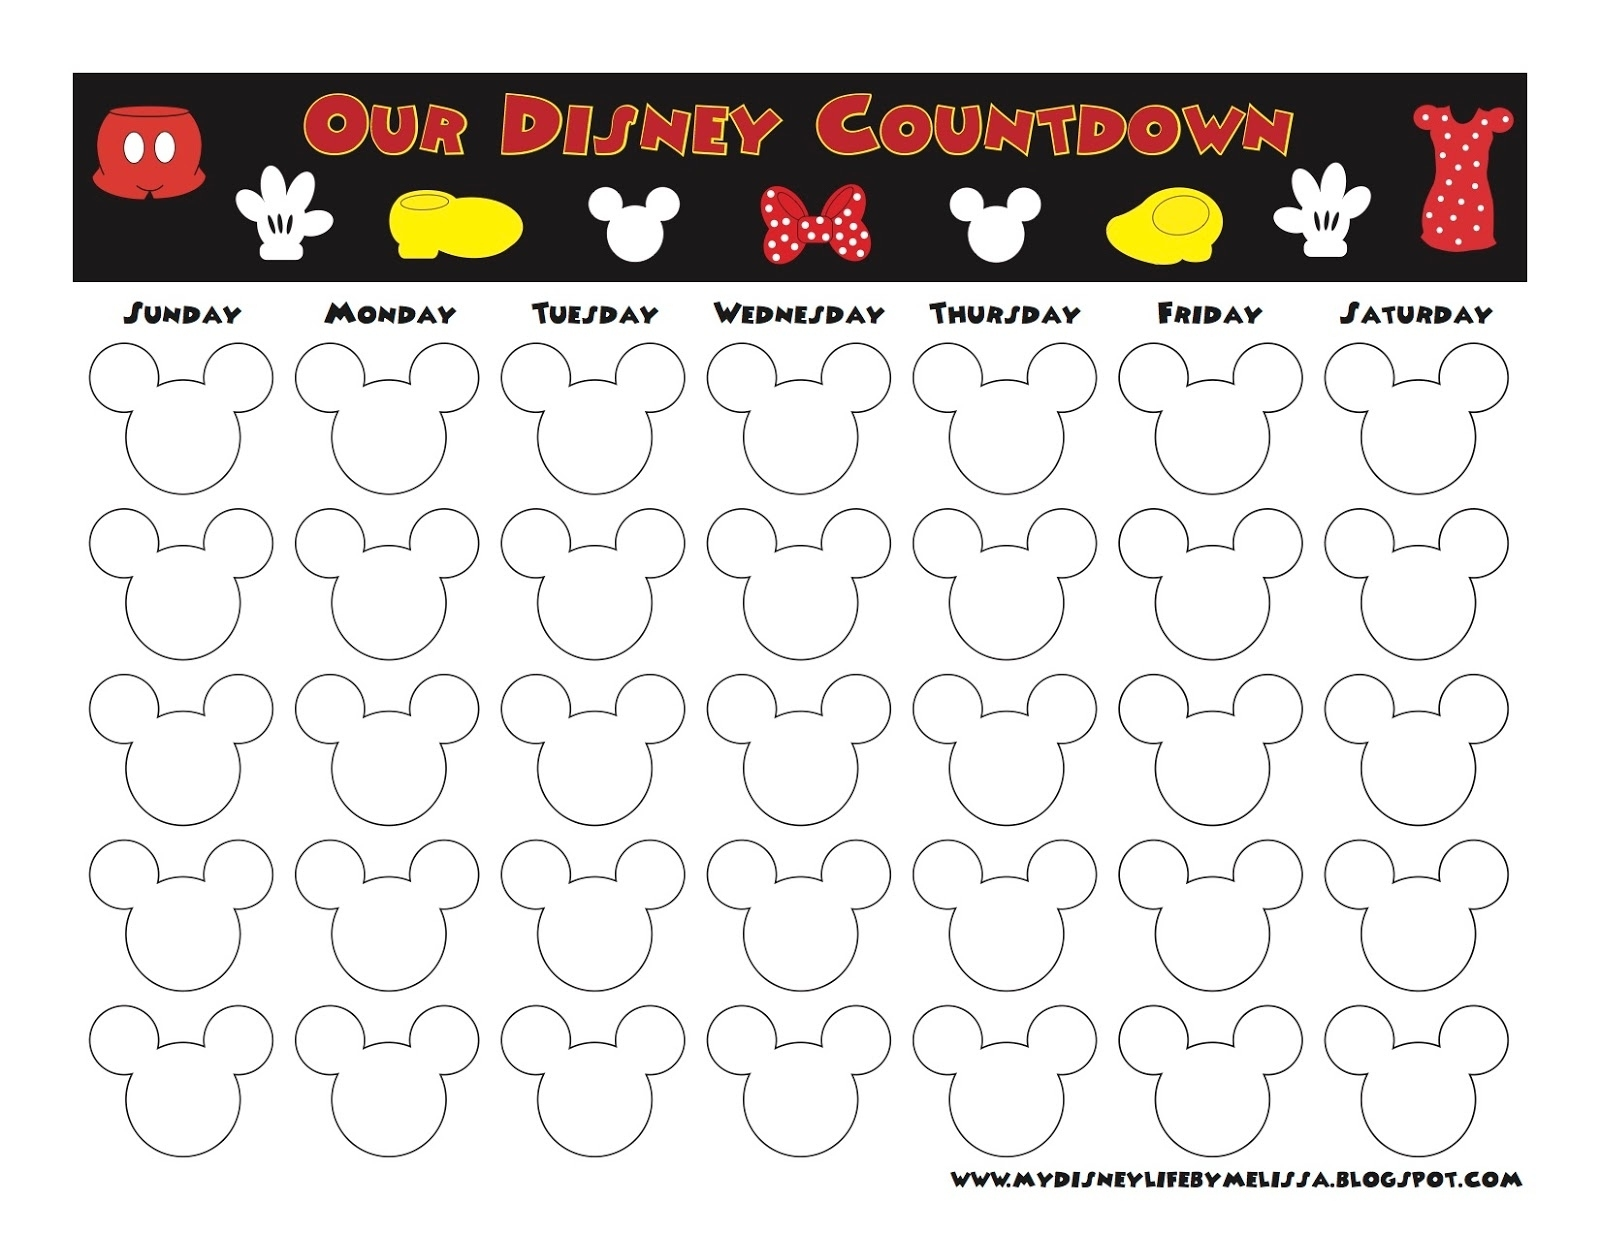 My Disney Life: Countdown Calendars Printable Countdown To Disney Calendar